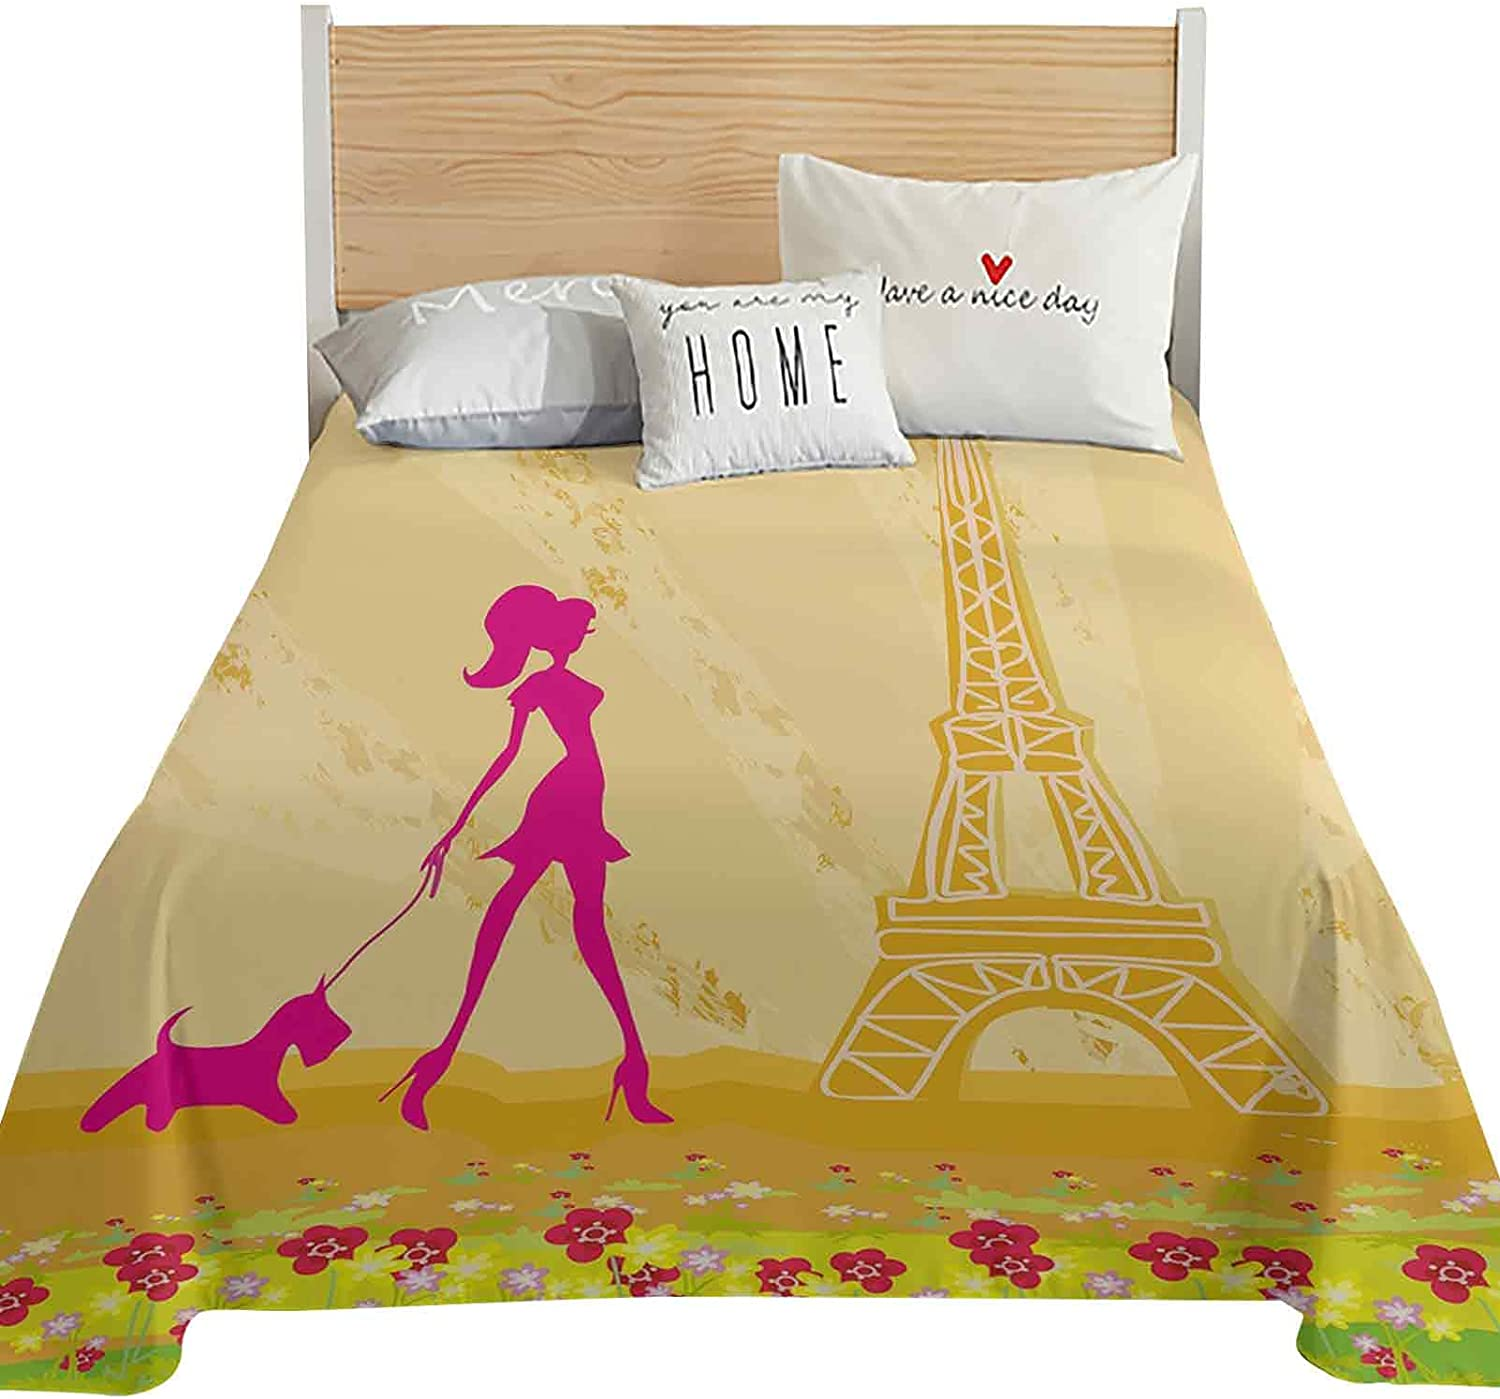 Teen Room Decor Full Size Flat Silhouette Only Pink A Sheet Bombing Inventory cleanup selling sale free shipping of